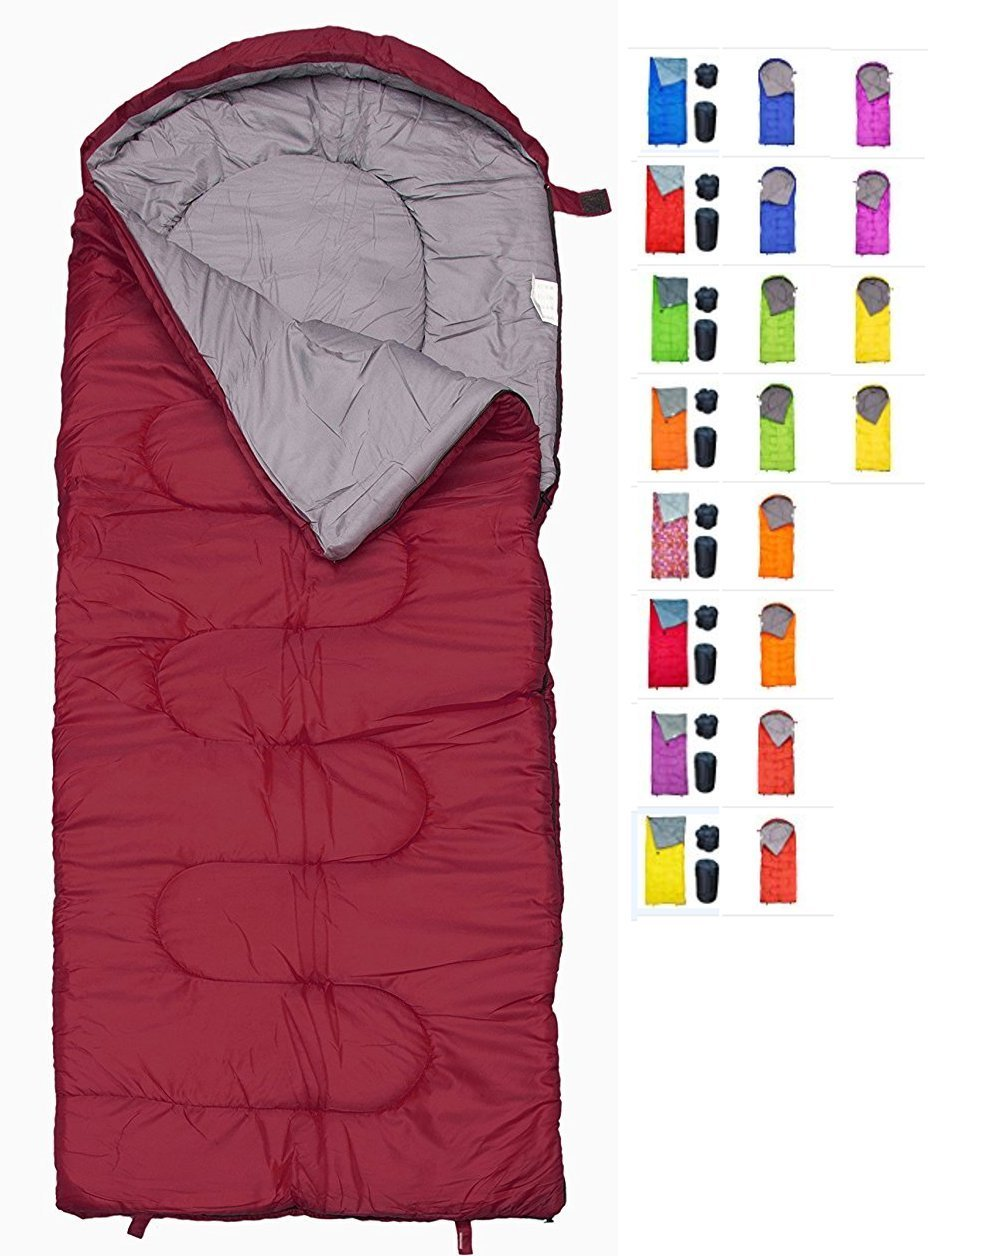 REVALCAMP Sleeping Bag for Cold Weather - 4 Season Envelope Shape Bags by Great for Kids, Teens & Adults. Warm and Lightweight - Perfect for Hiking, Backpacking & Camping (Bordeaux - Left Zip) by REVALCAMP